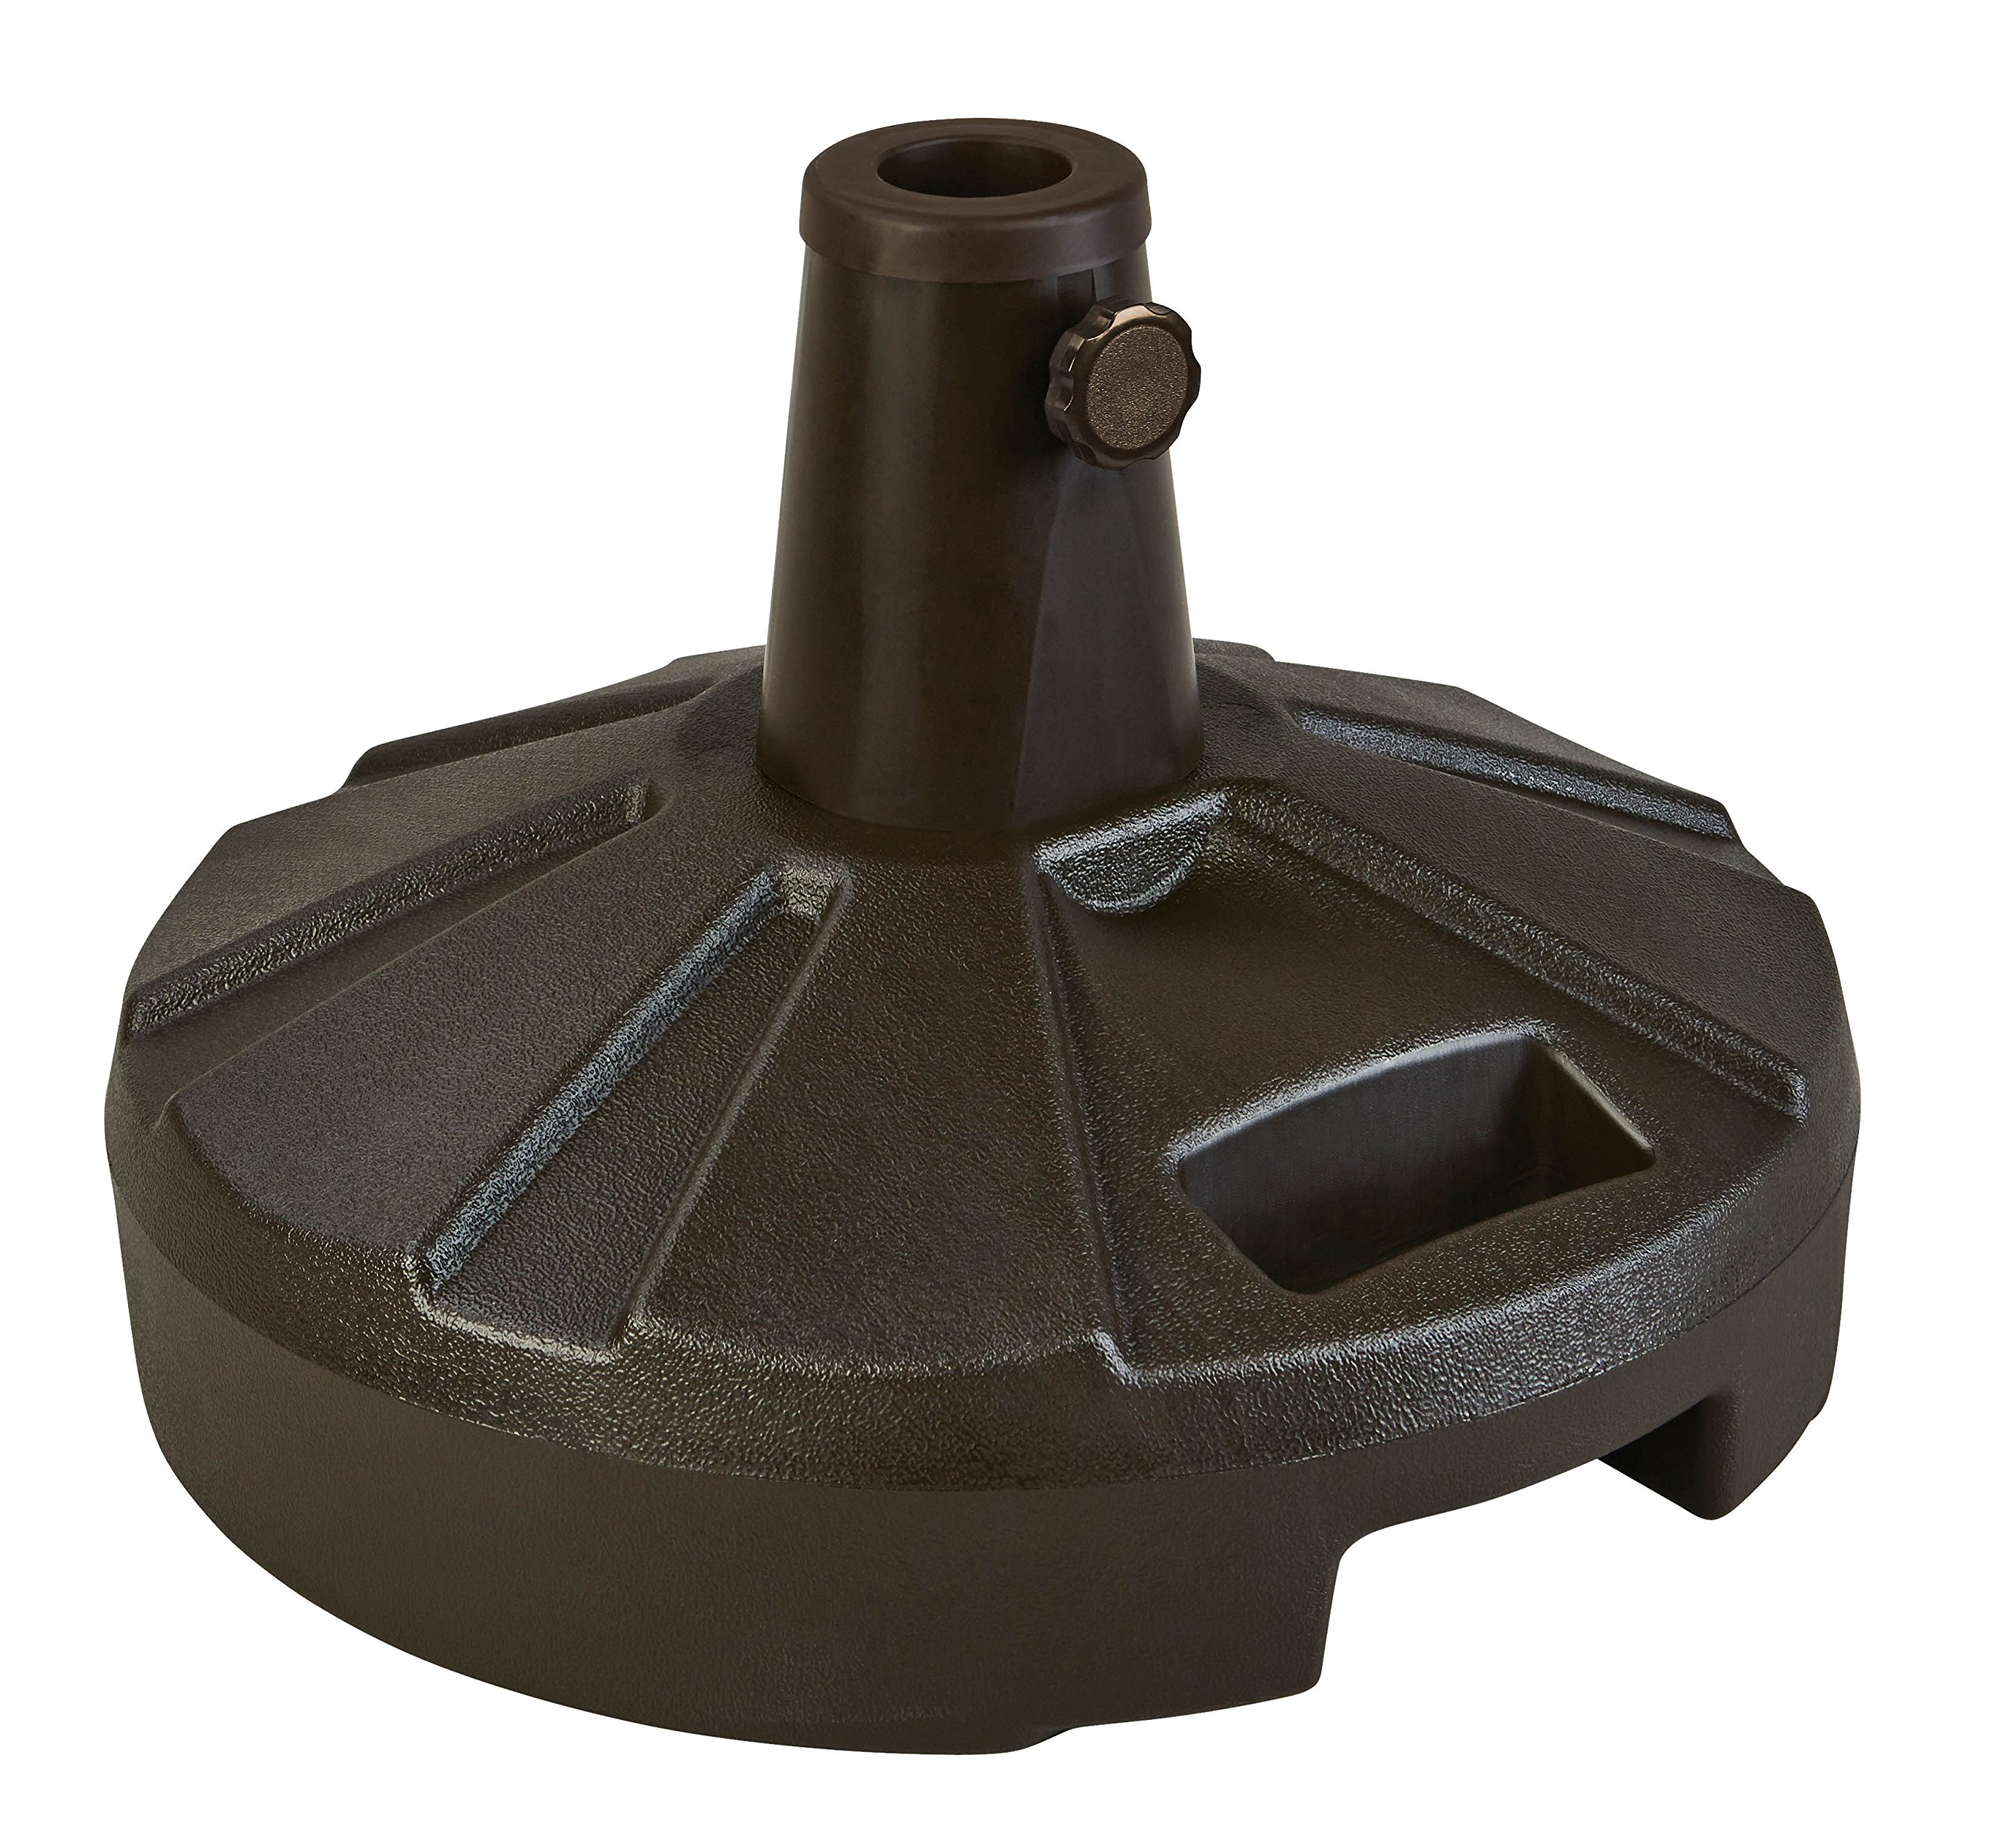 Patio Living Concepts 267 Unweighted 50-Pound-Capacity Umbrella Stand, Bronze